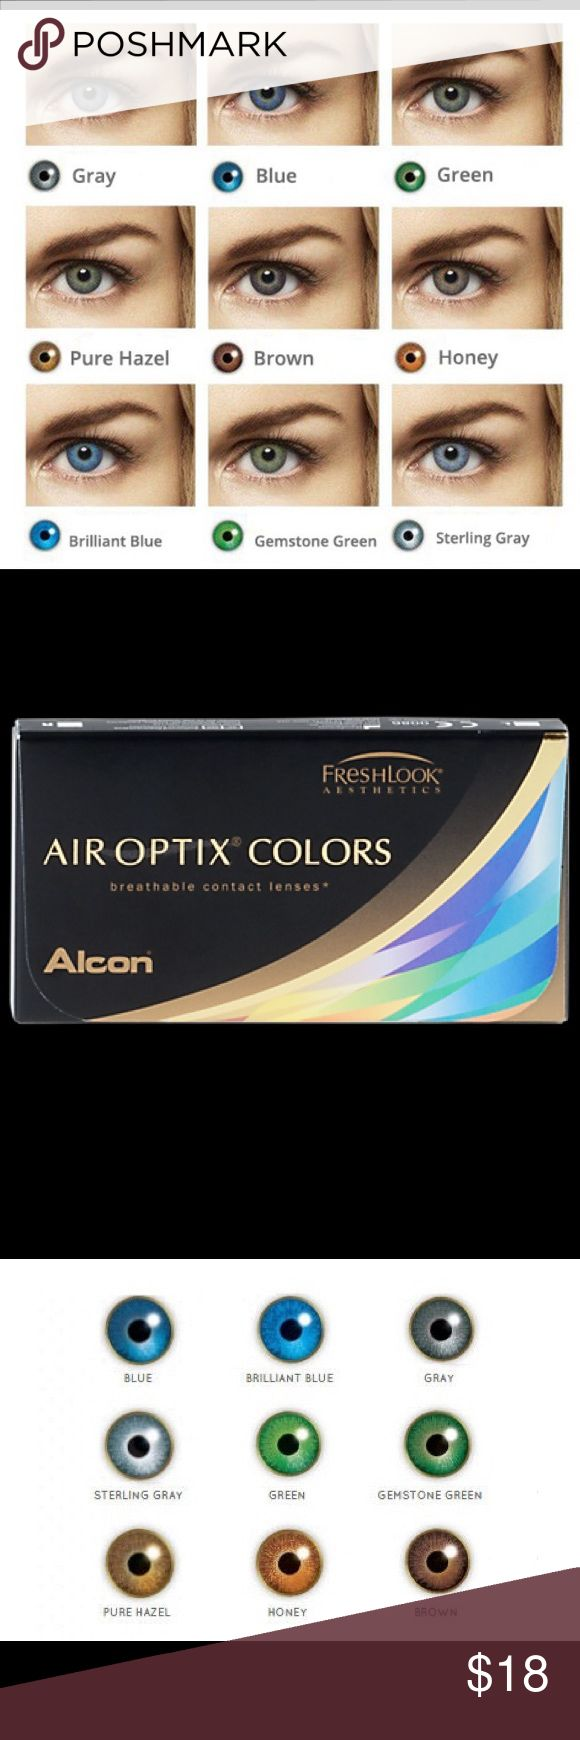 Change your look with alcon air optix colors contact lenses change your look with alcon air optix colors contact lenses alcon eyesonline alcon pinterest color contacts nvjuhfo Choice Image